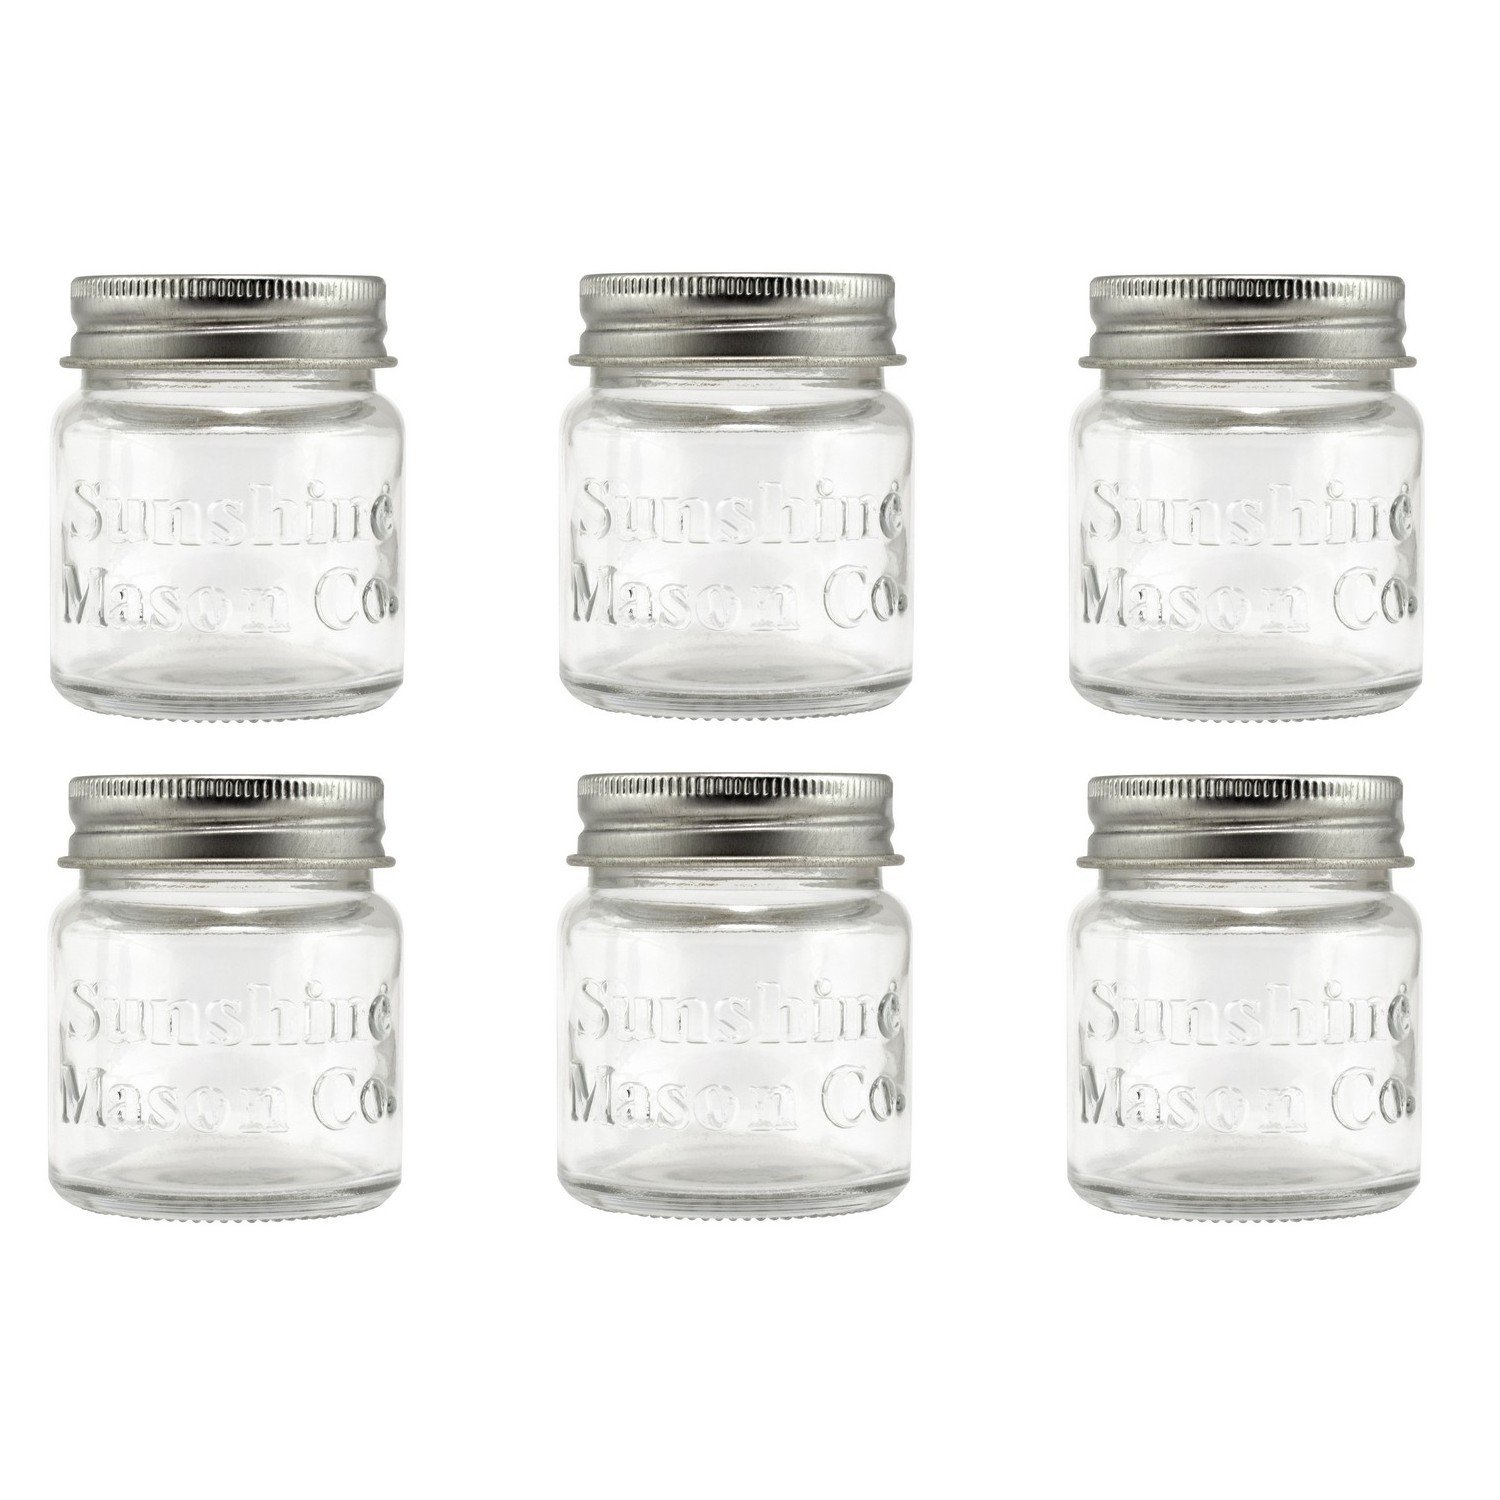 Sunshine Mason Co. Mini Mason Jar Shot Glasses with Metal Lid 2 Ounces, 6 Pieces